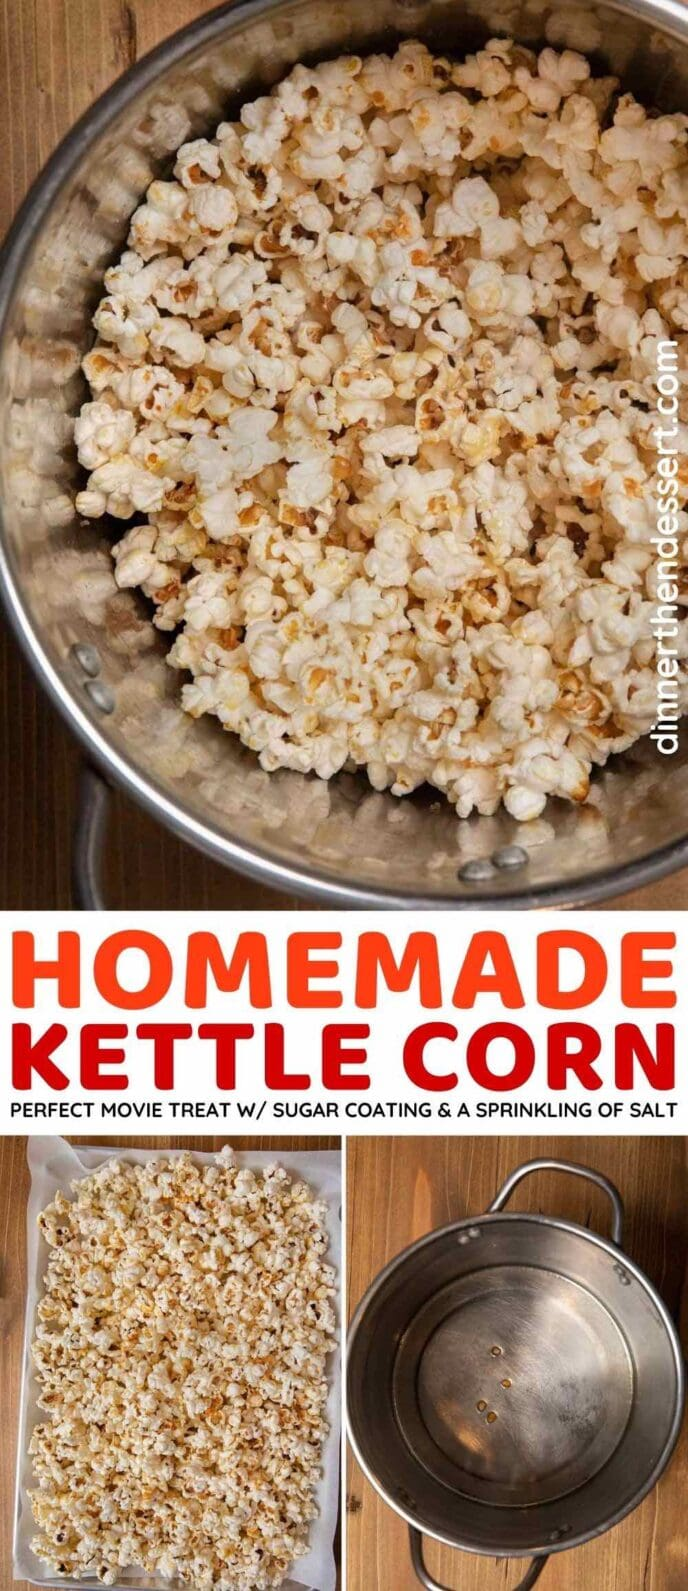 Homemade Kettle Corn collage